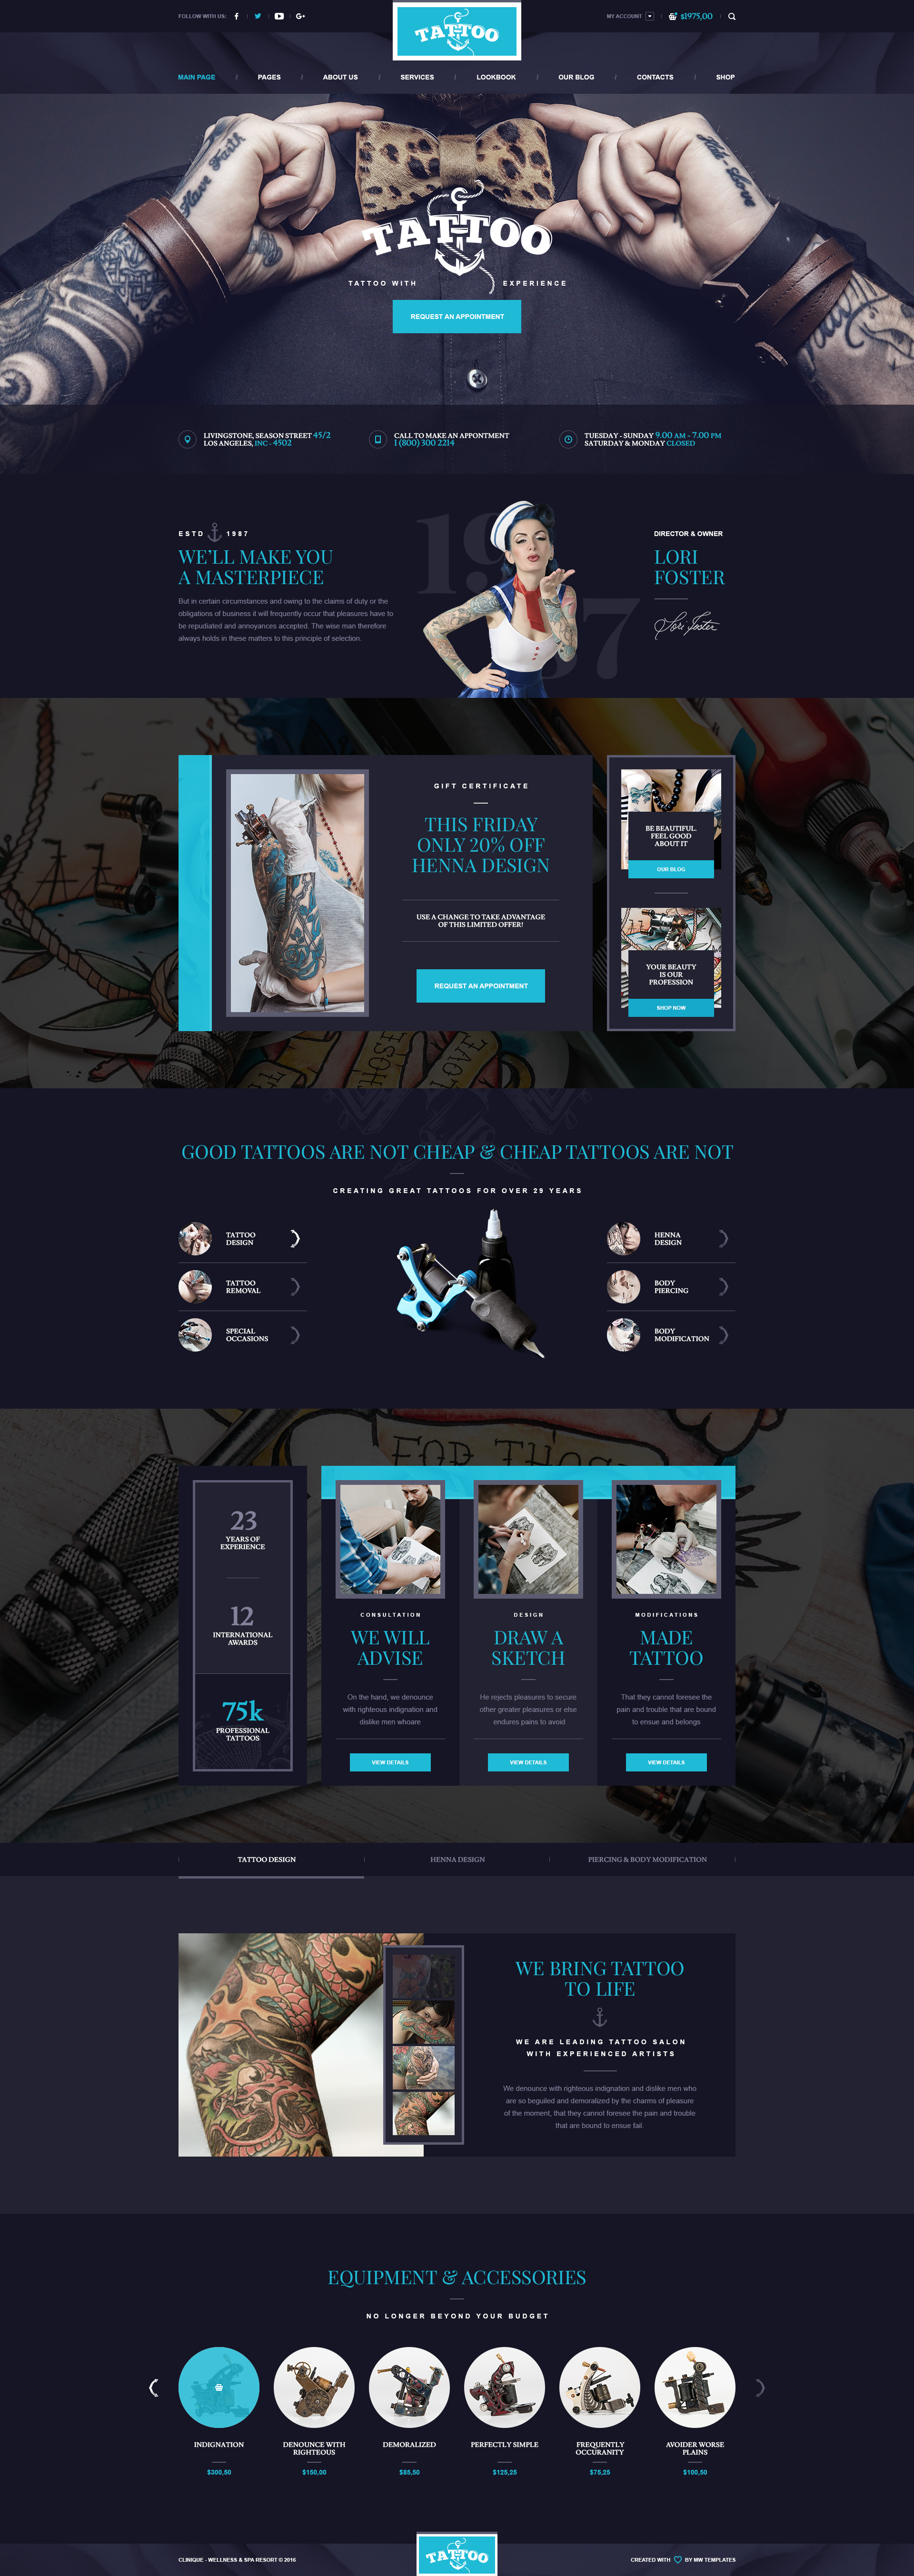 Ink Arts Tattoo Salon Psd Template Psd Templates Ideas And Designs